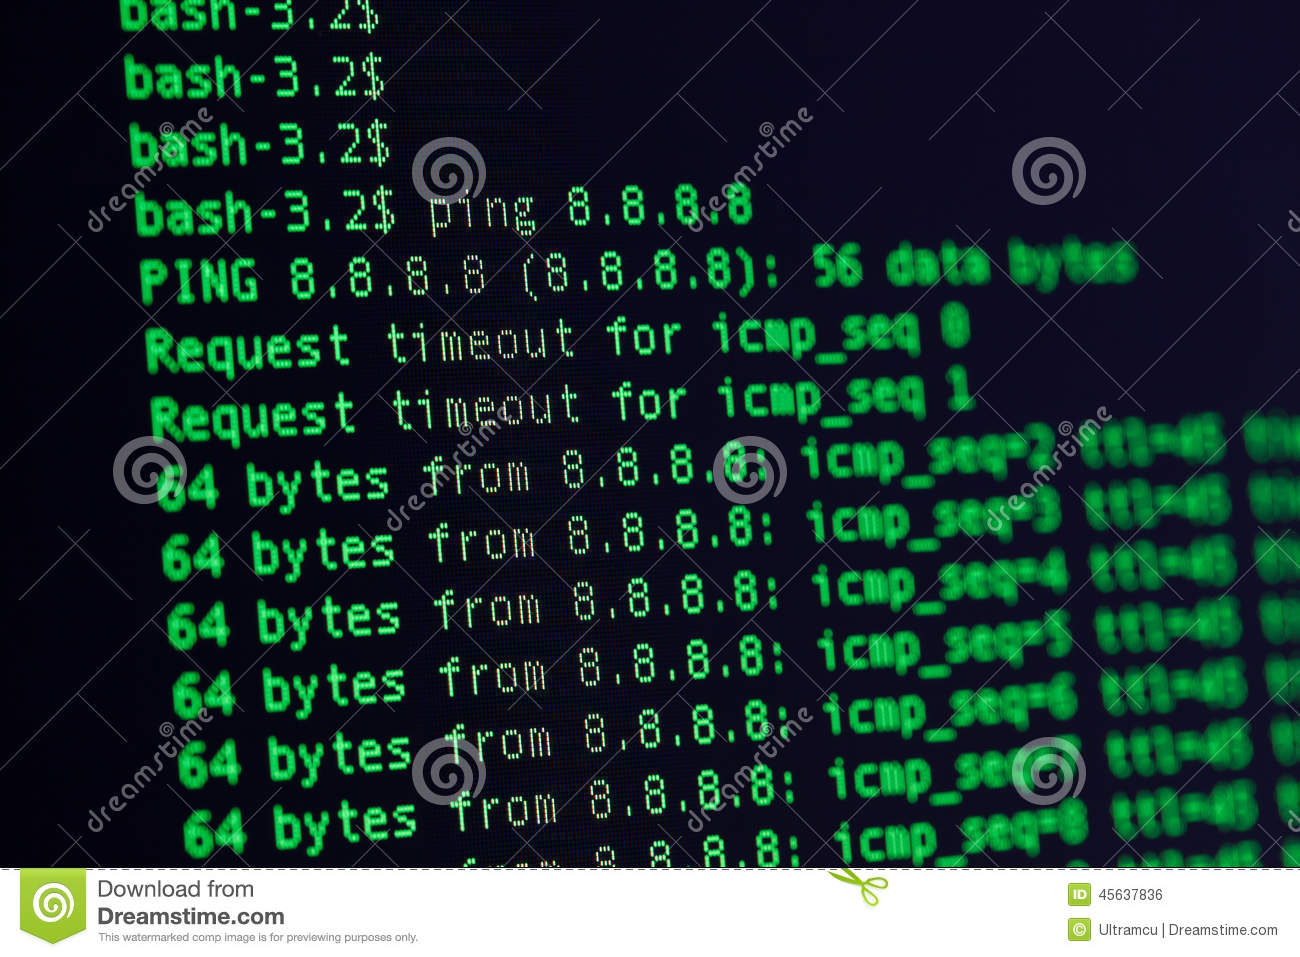 UNIX Bash Shell Green Color On Black Background Royalty Free Stock Image